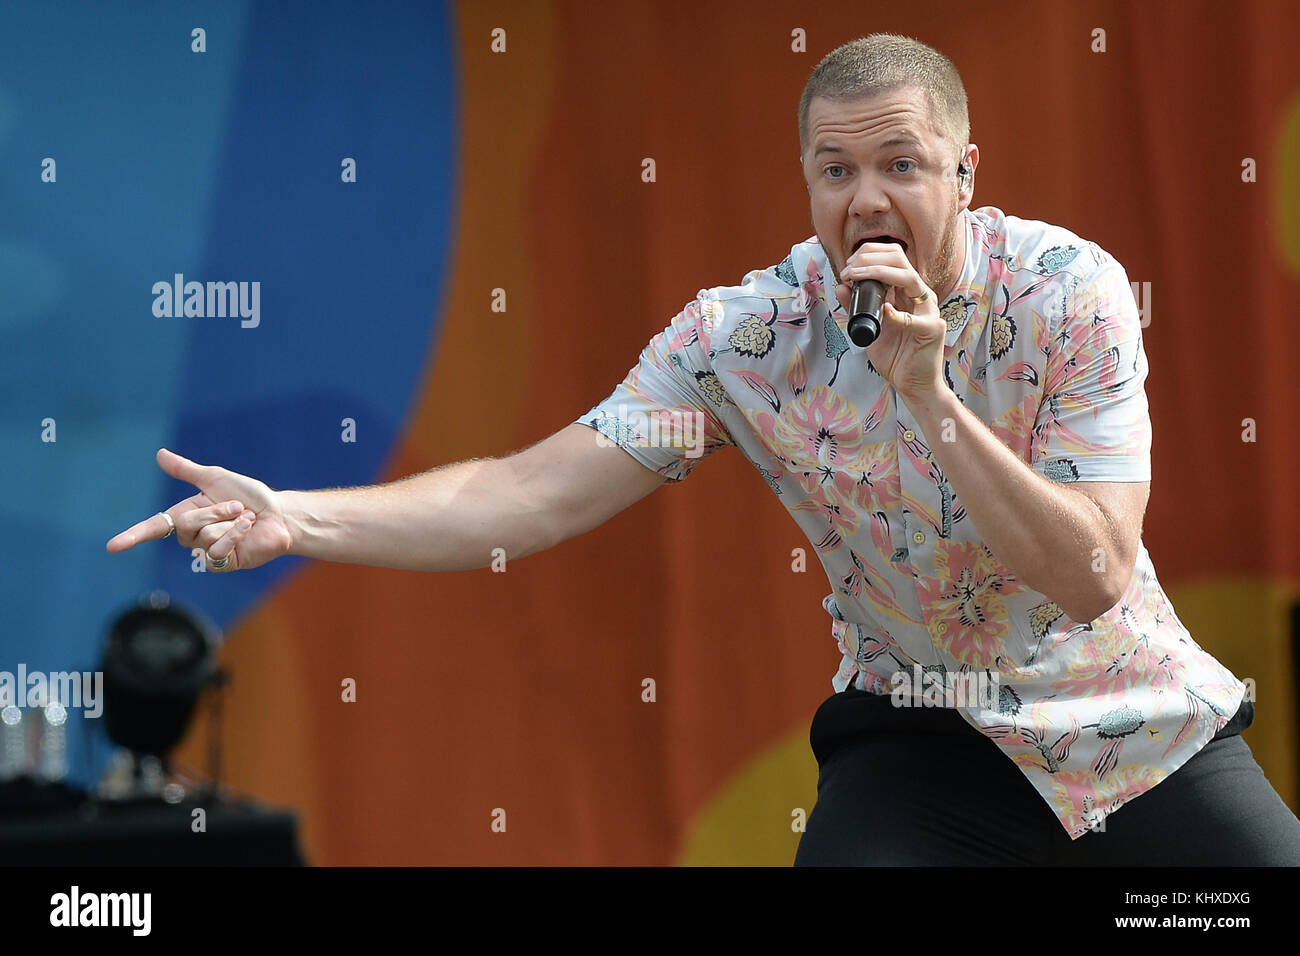 NEW YORK, NY - JULY 28: Lead singer Dan Reynolds and his band Imagine Dragons perform on ABC's 'Good Morning - Stock Image